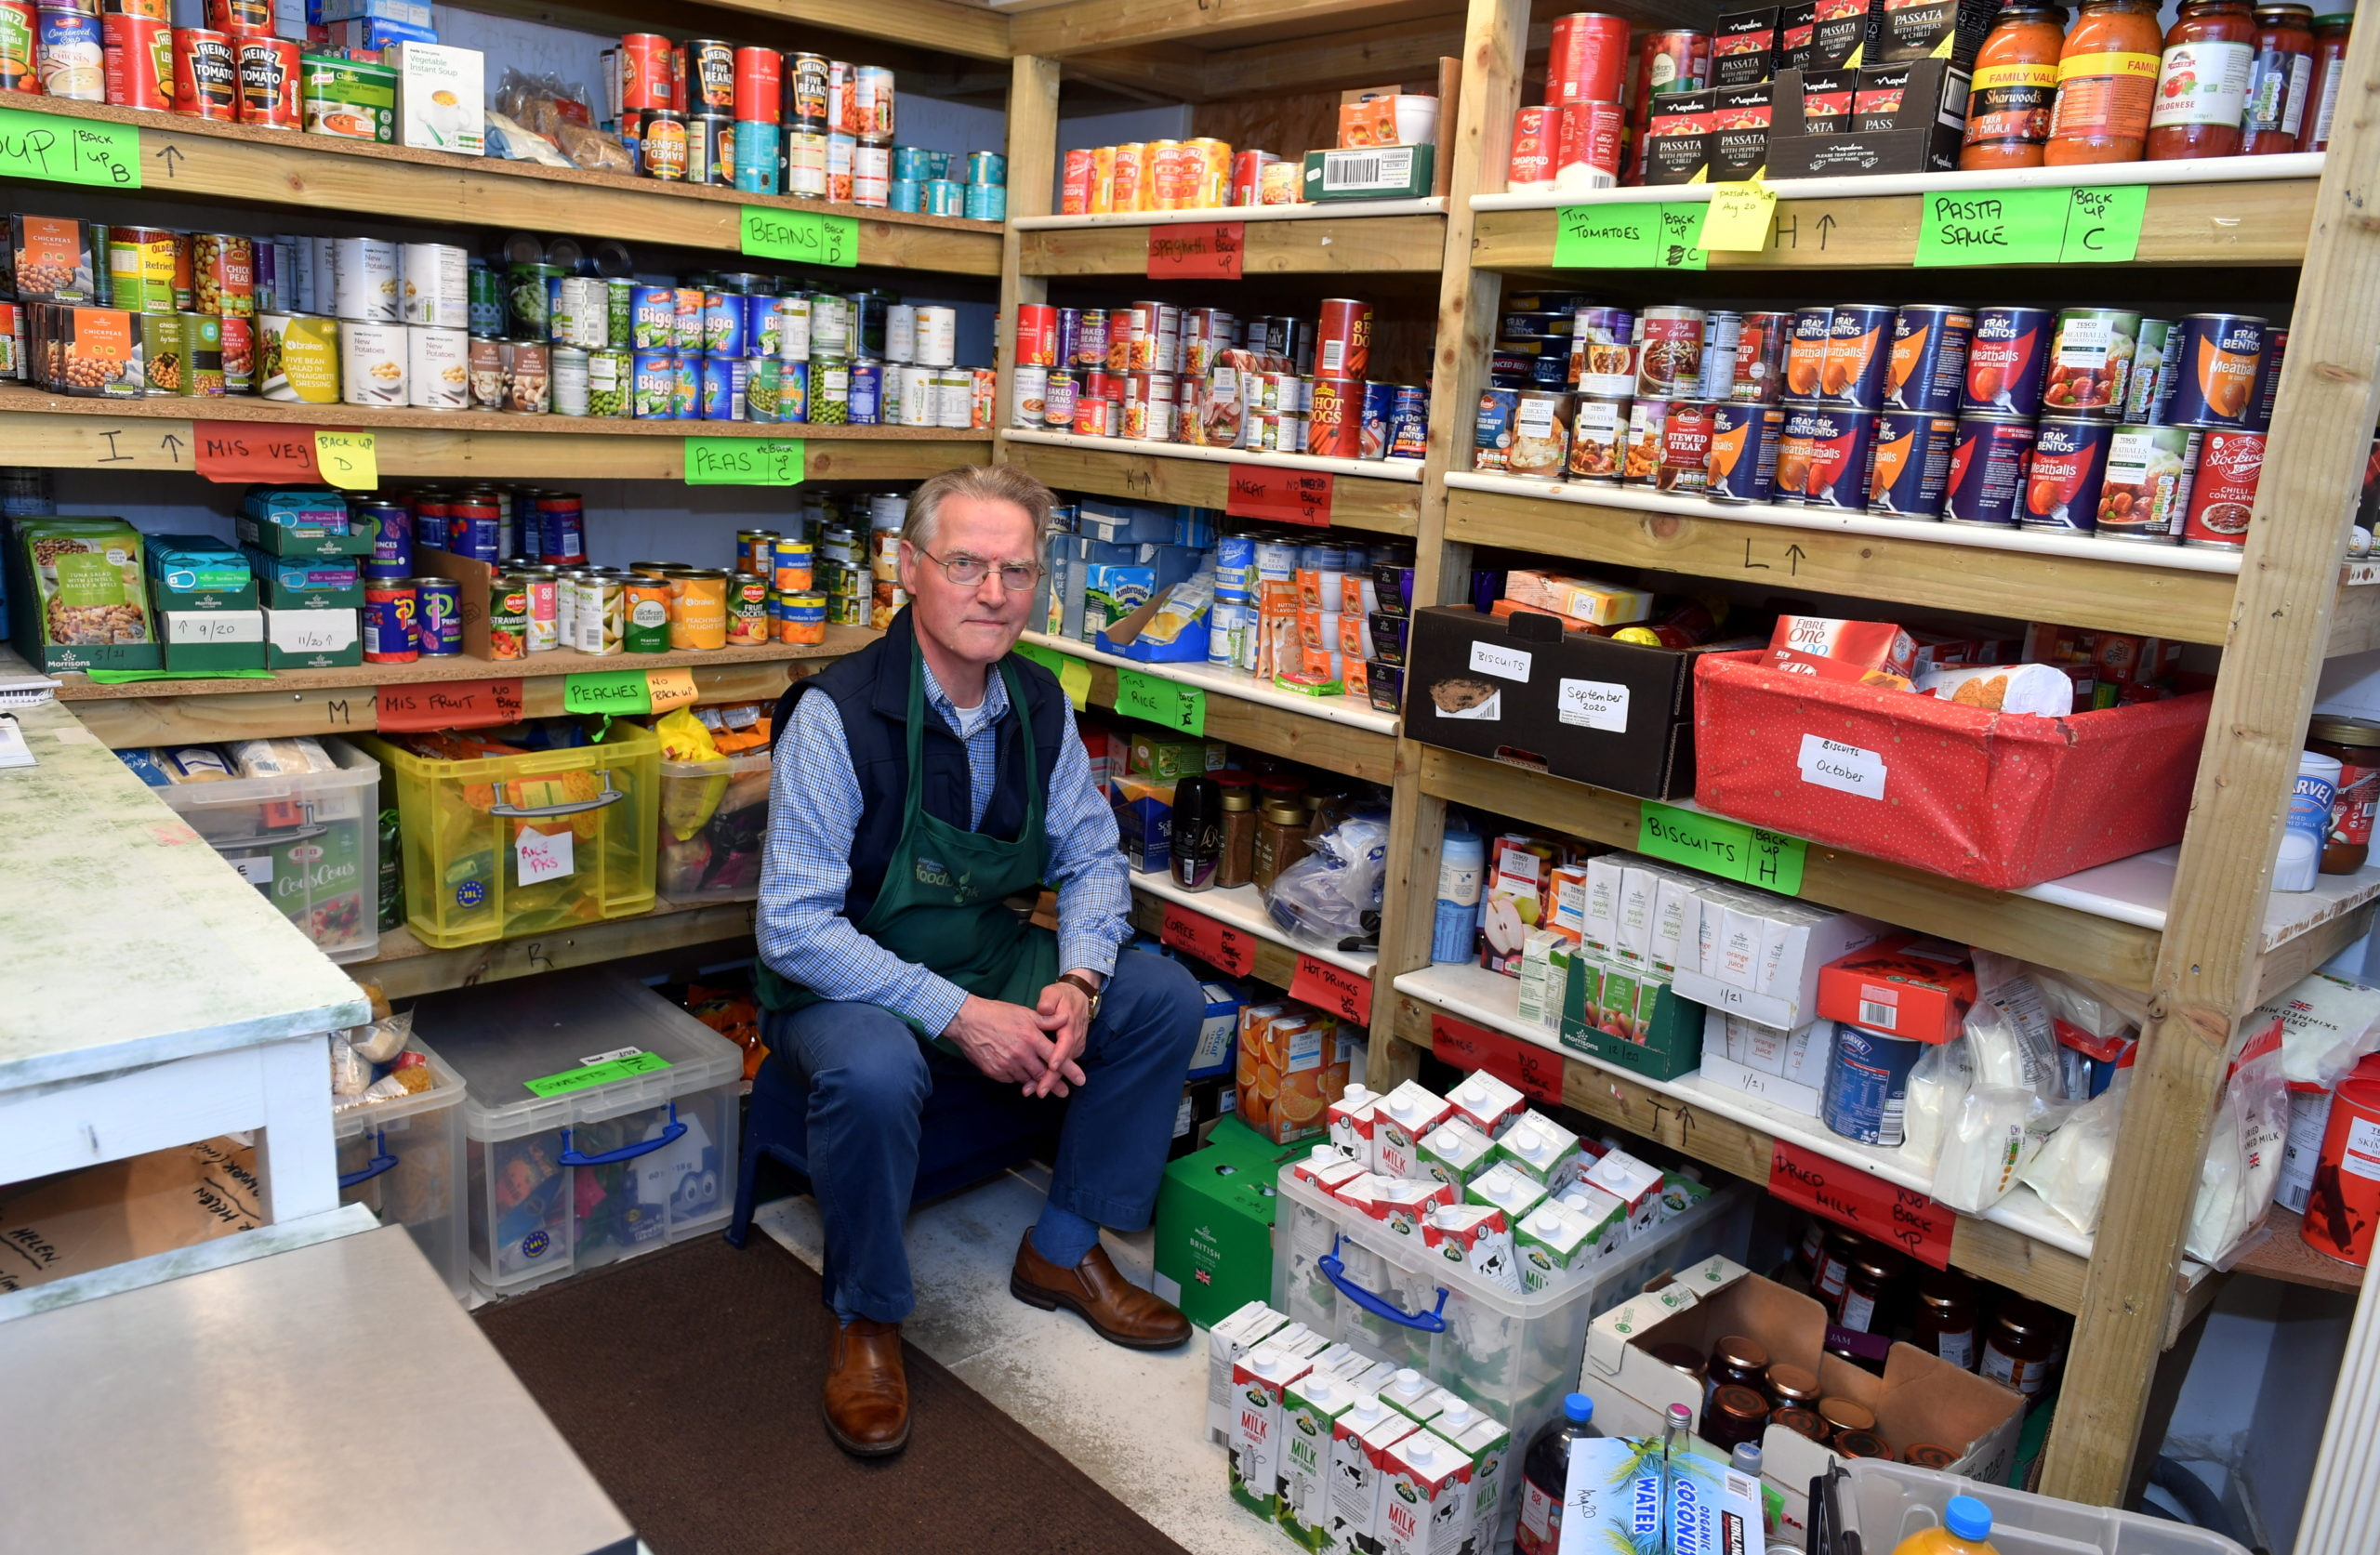 George Montgomery, Volunteer Coordinator, at the Aberdeenshire South Foodbank. Picture by Chris Sumner.